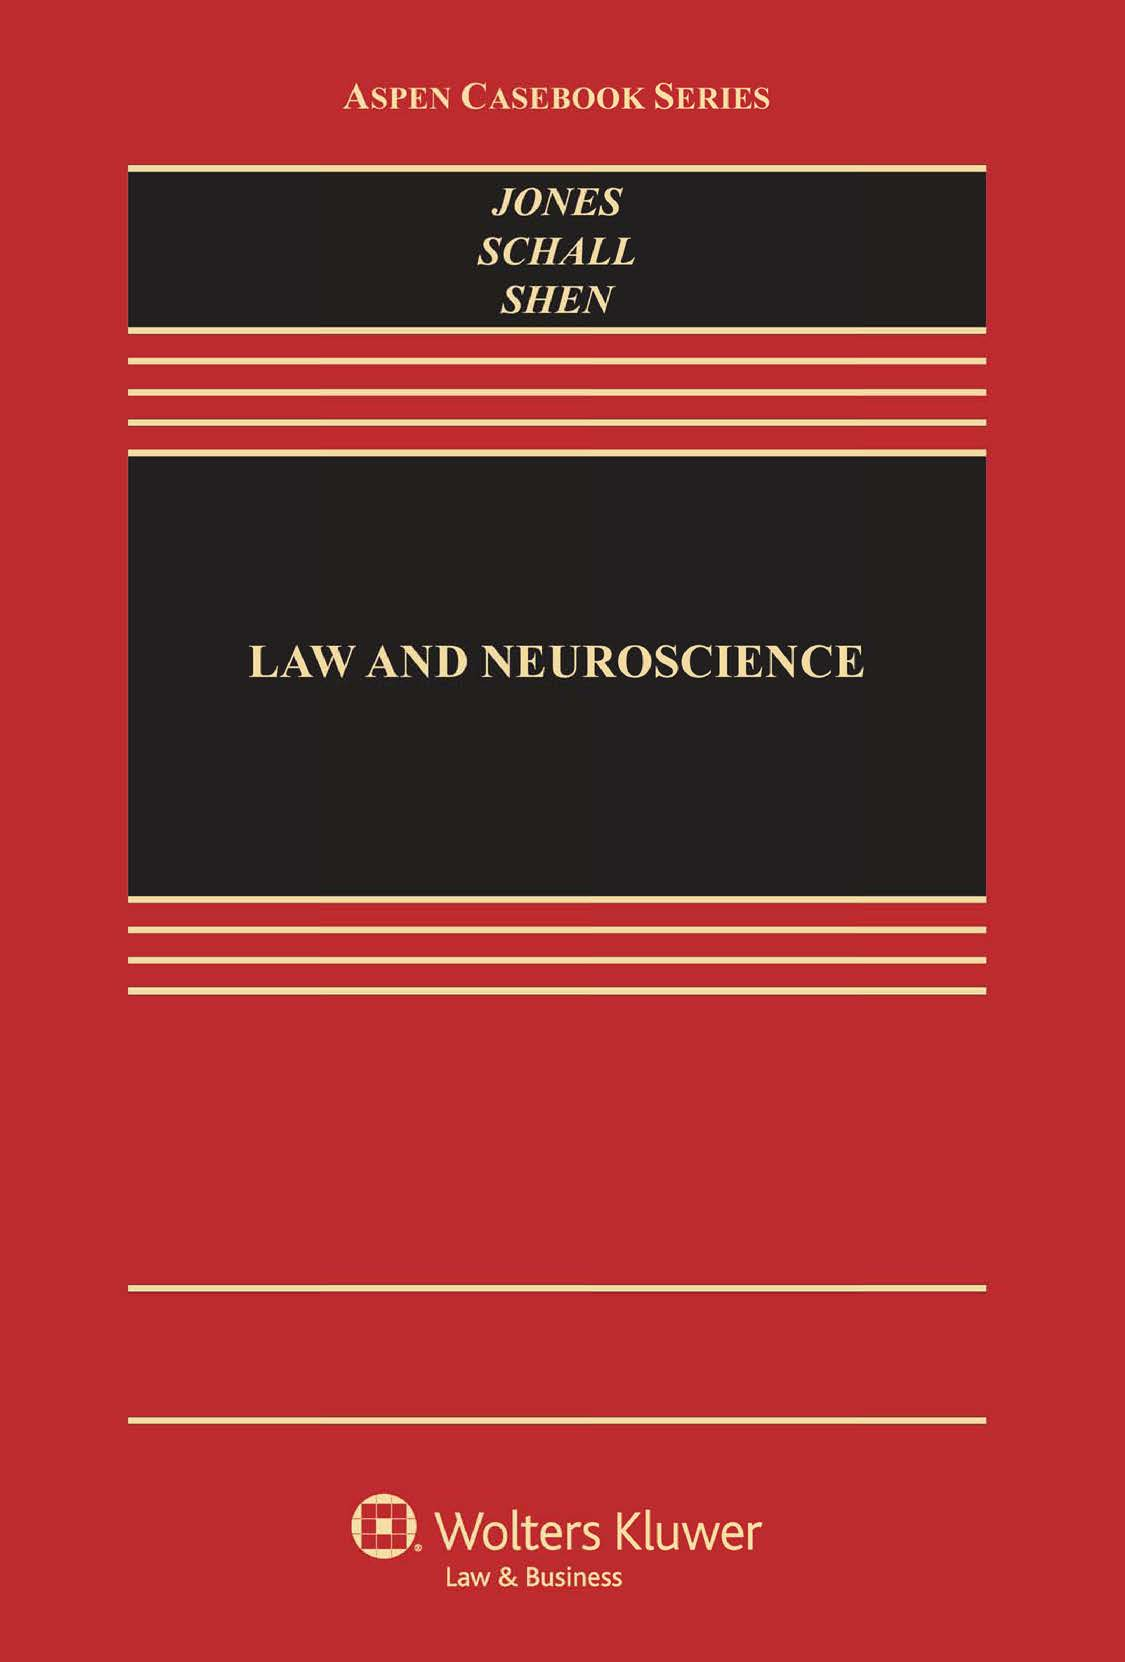 Law and Neuroscience Coursebook